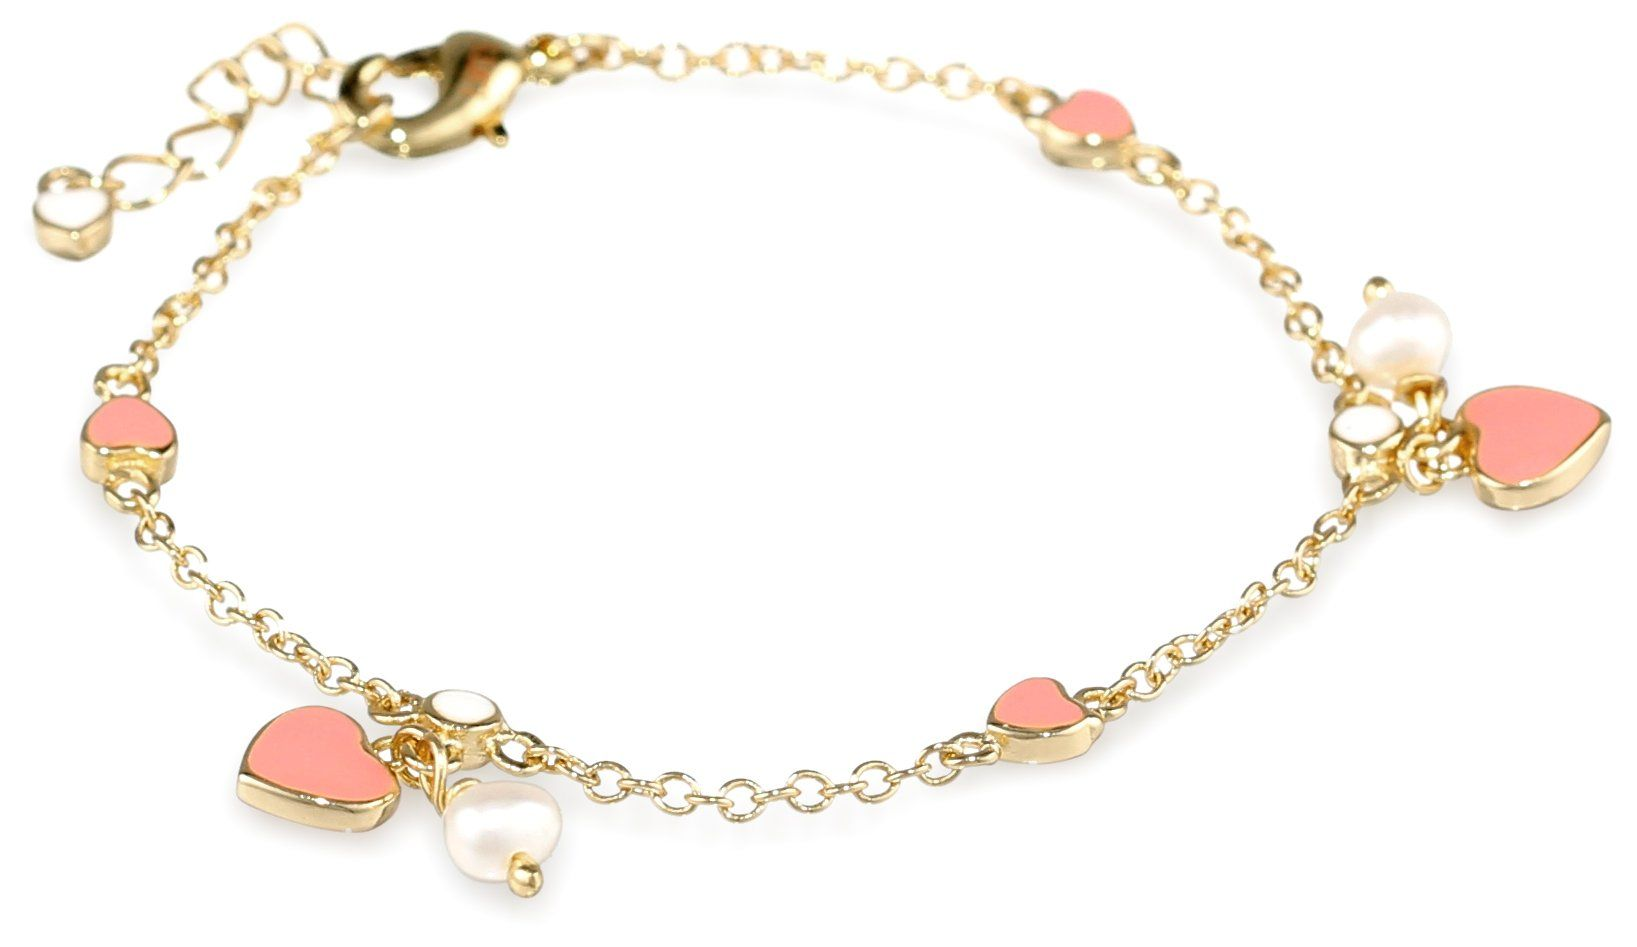 Little Miss Twin Stars Girls' Pink Hearts and Fresh Water Pearls Vermeil Chain Charm Bracelet, 5.5""